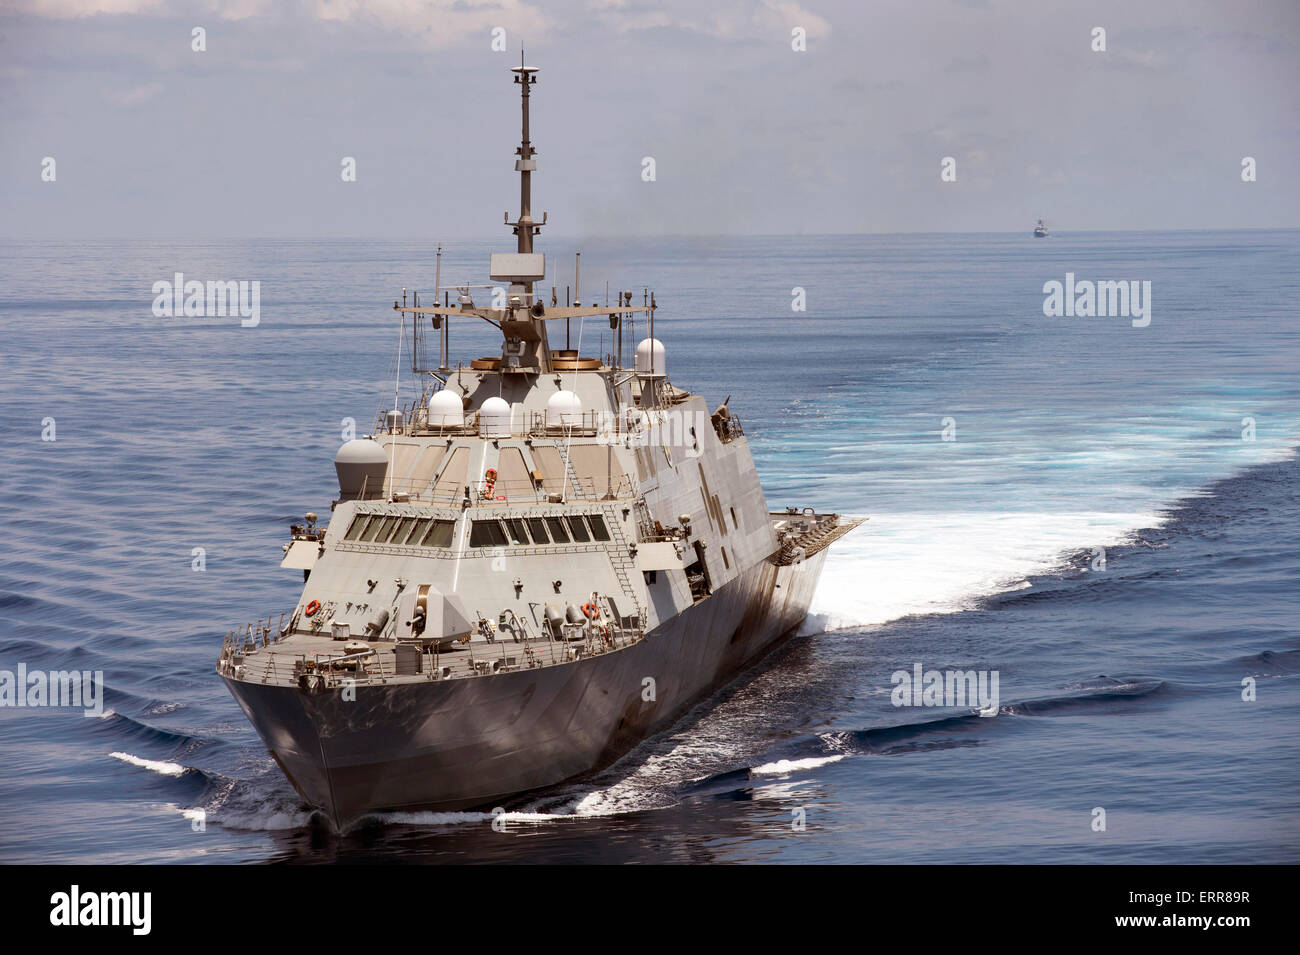 The US Navy littoral combat ship USS Fort Worth conducts routine patrols in international waters of the South China - Stock Image